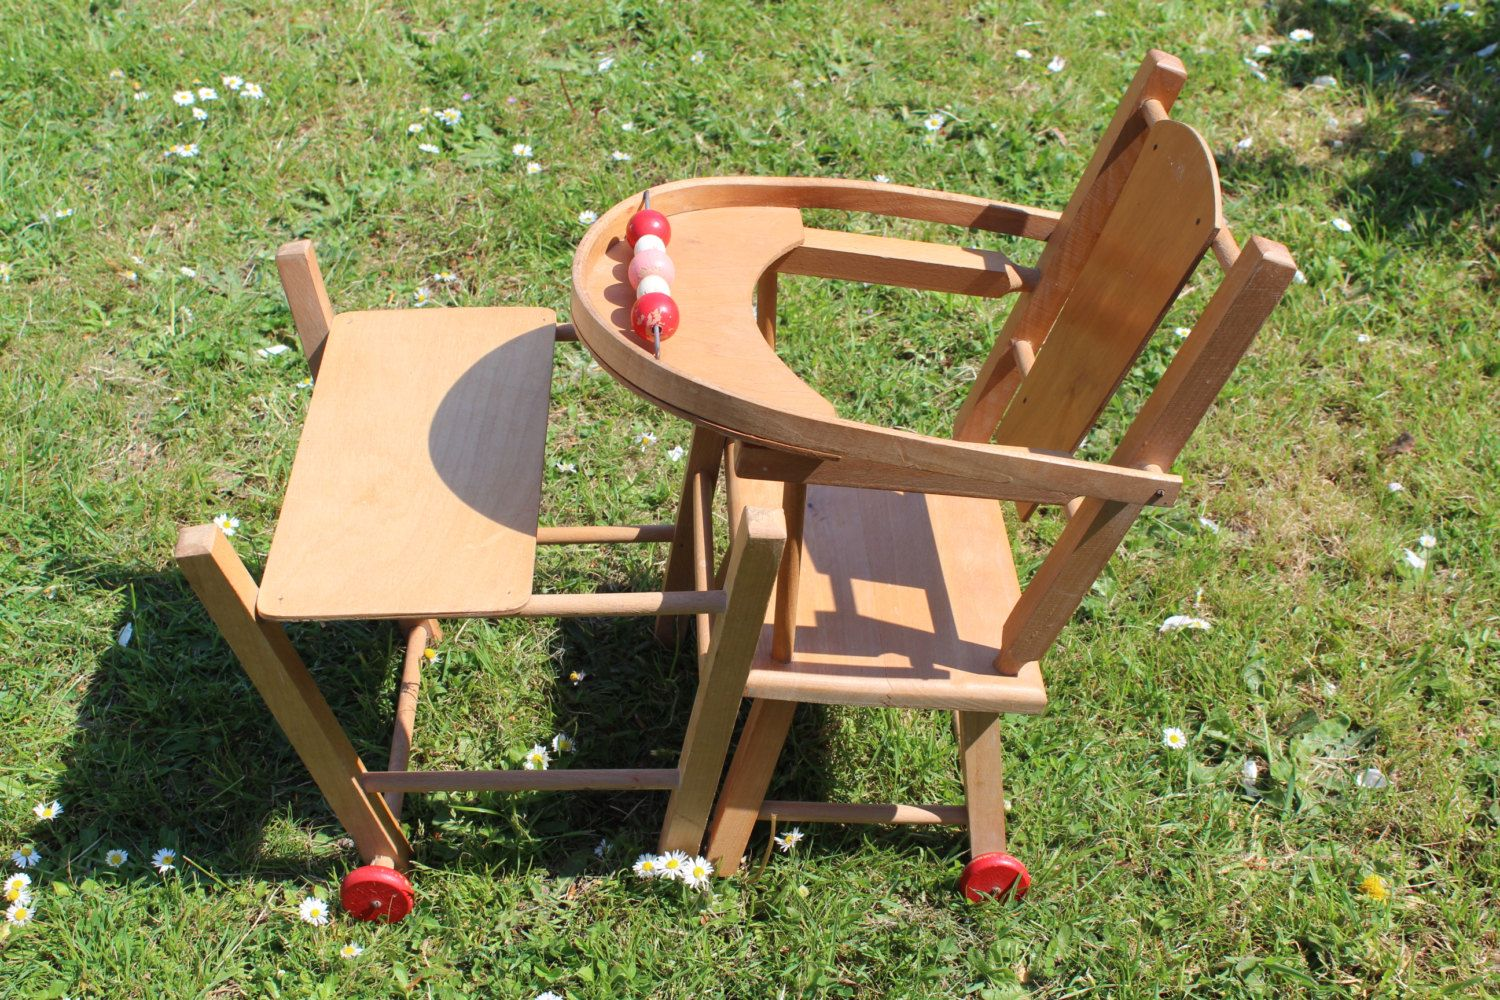 Dolls high chair 1960s wooden toddler toy vintage